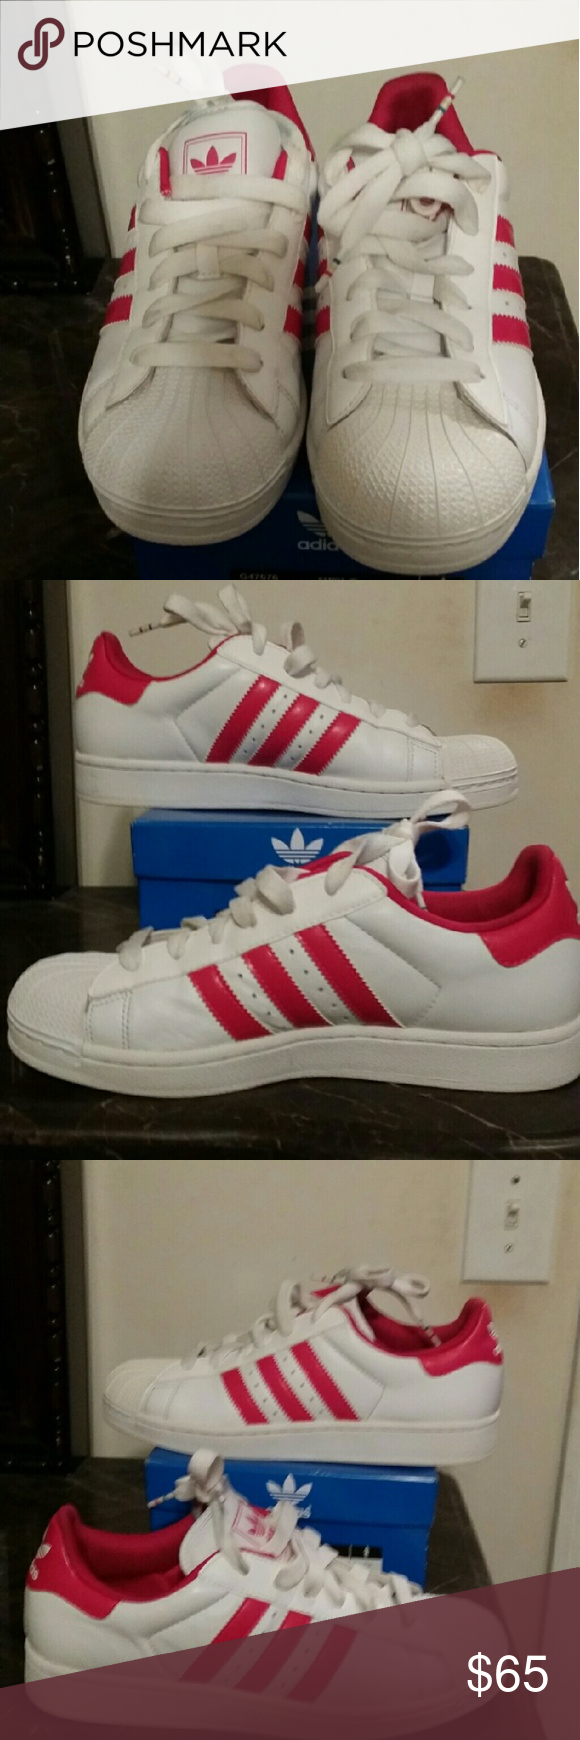 d12a3f1b1e0 Adidas women shoes White pink Adidas shell toe women s shoes. Excellent  condition only worn